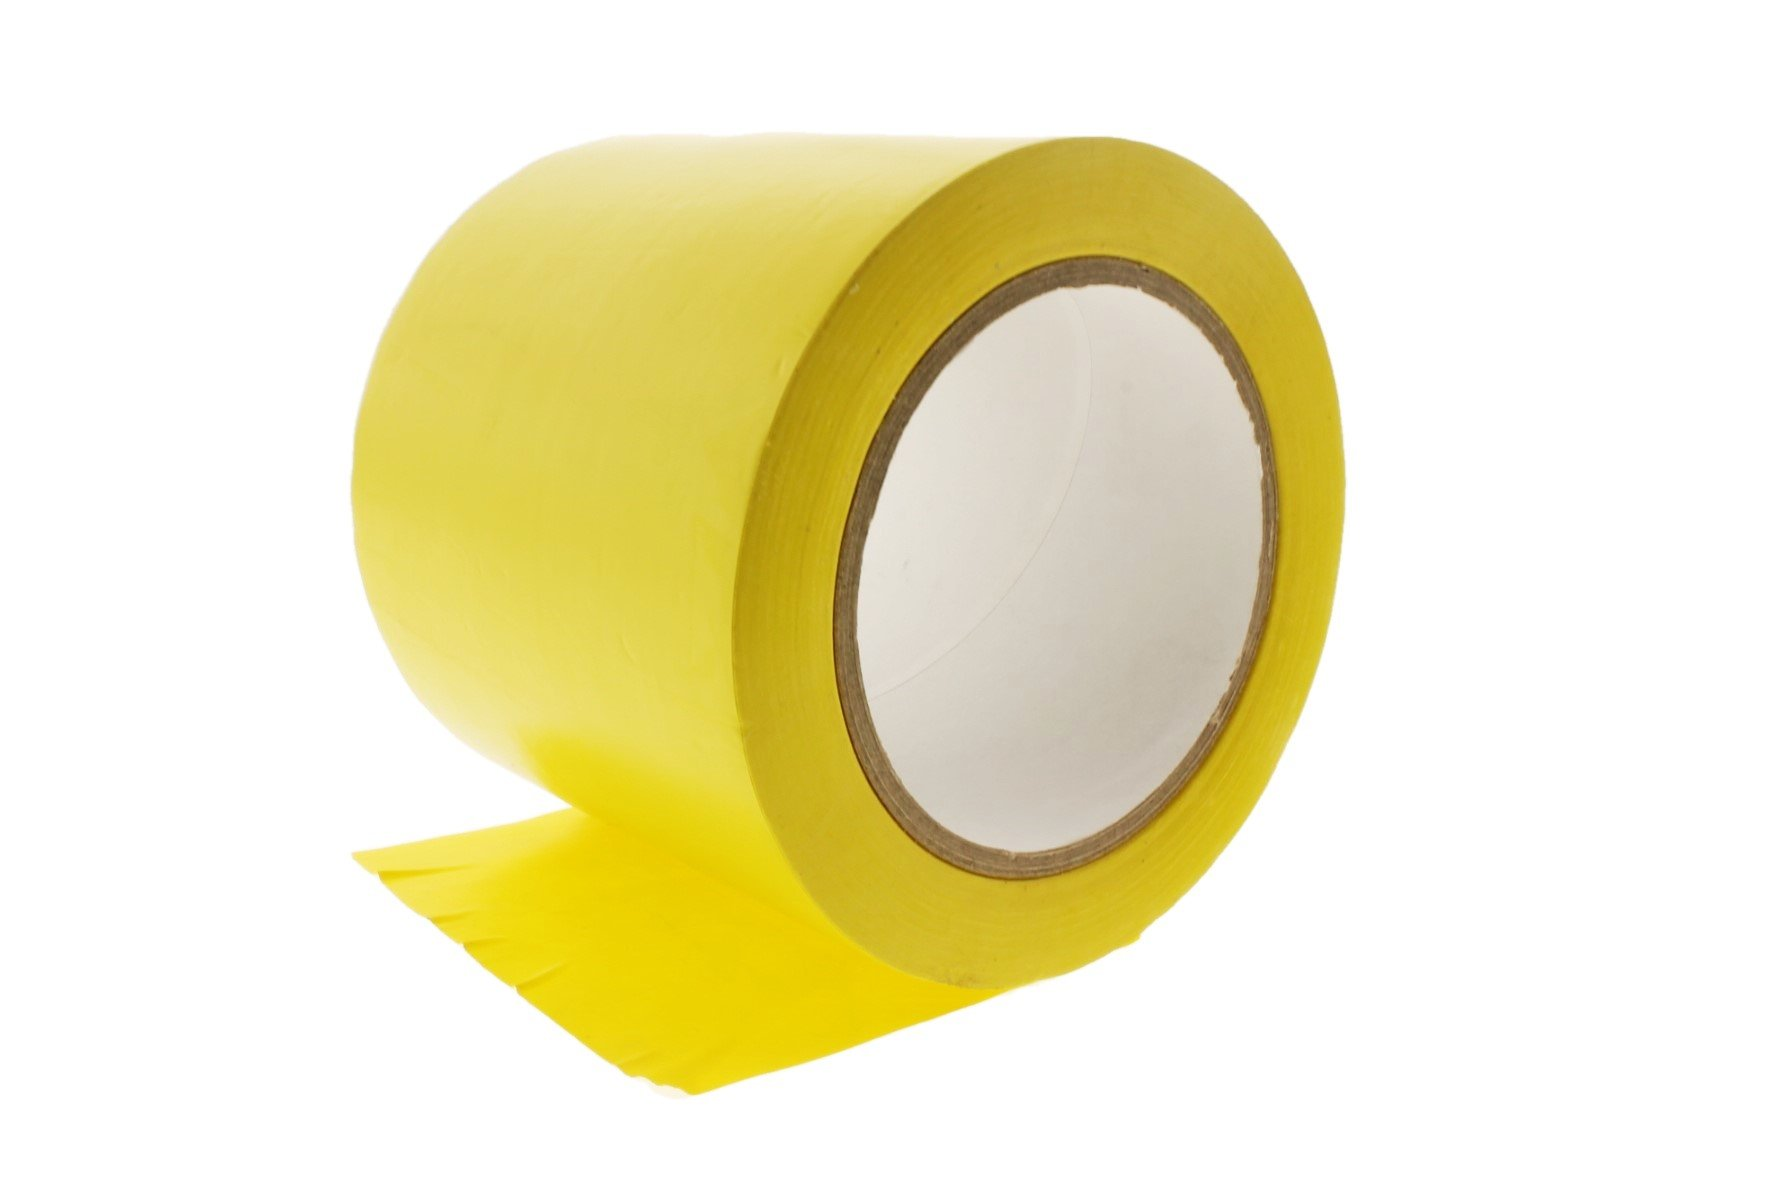 4'' General Purpose Yellow Insulated Adhesive PVC Vinyl Sealing Coding Marking Electrical Tape (3.76 in 96MM) 36 yard 7 mil